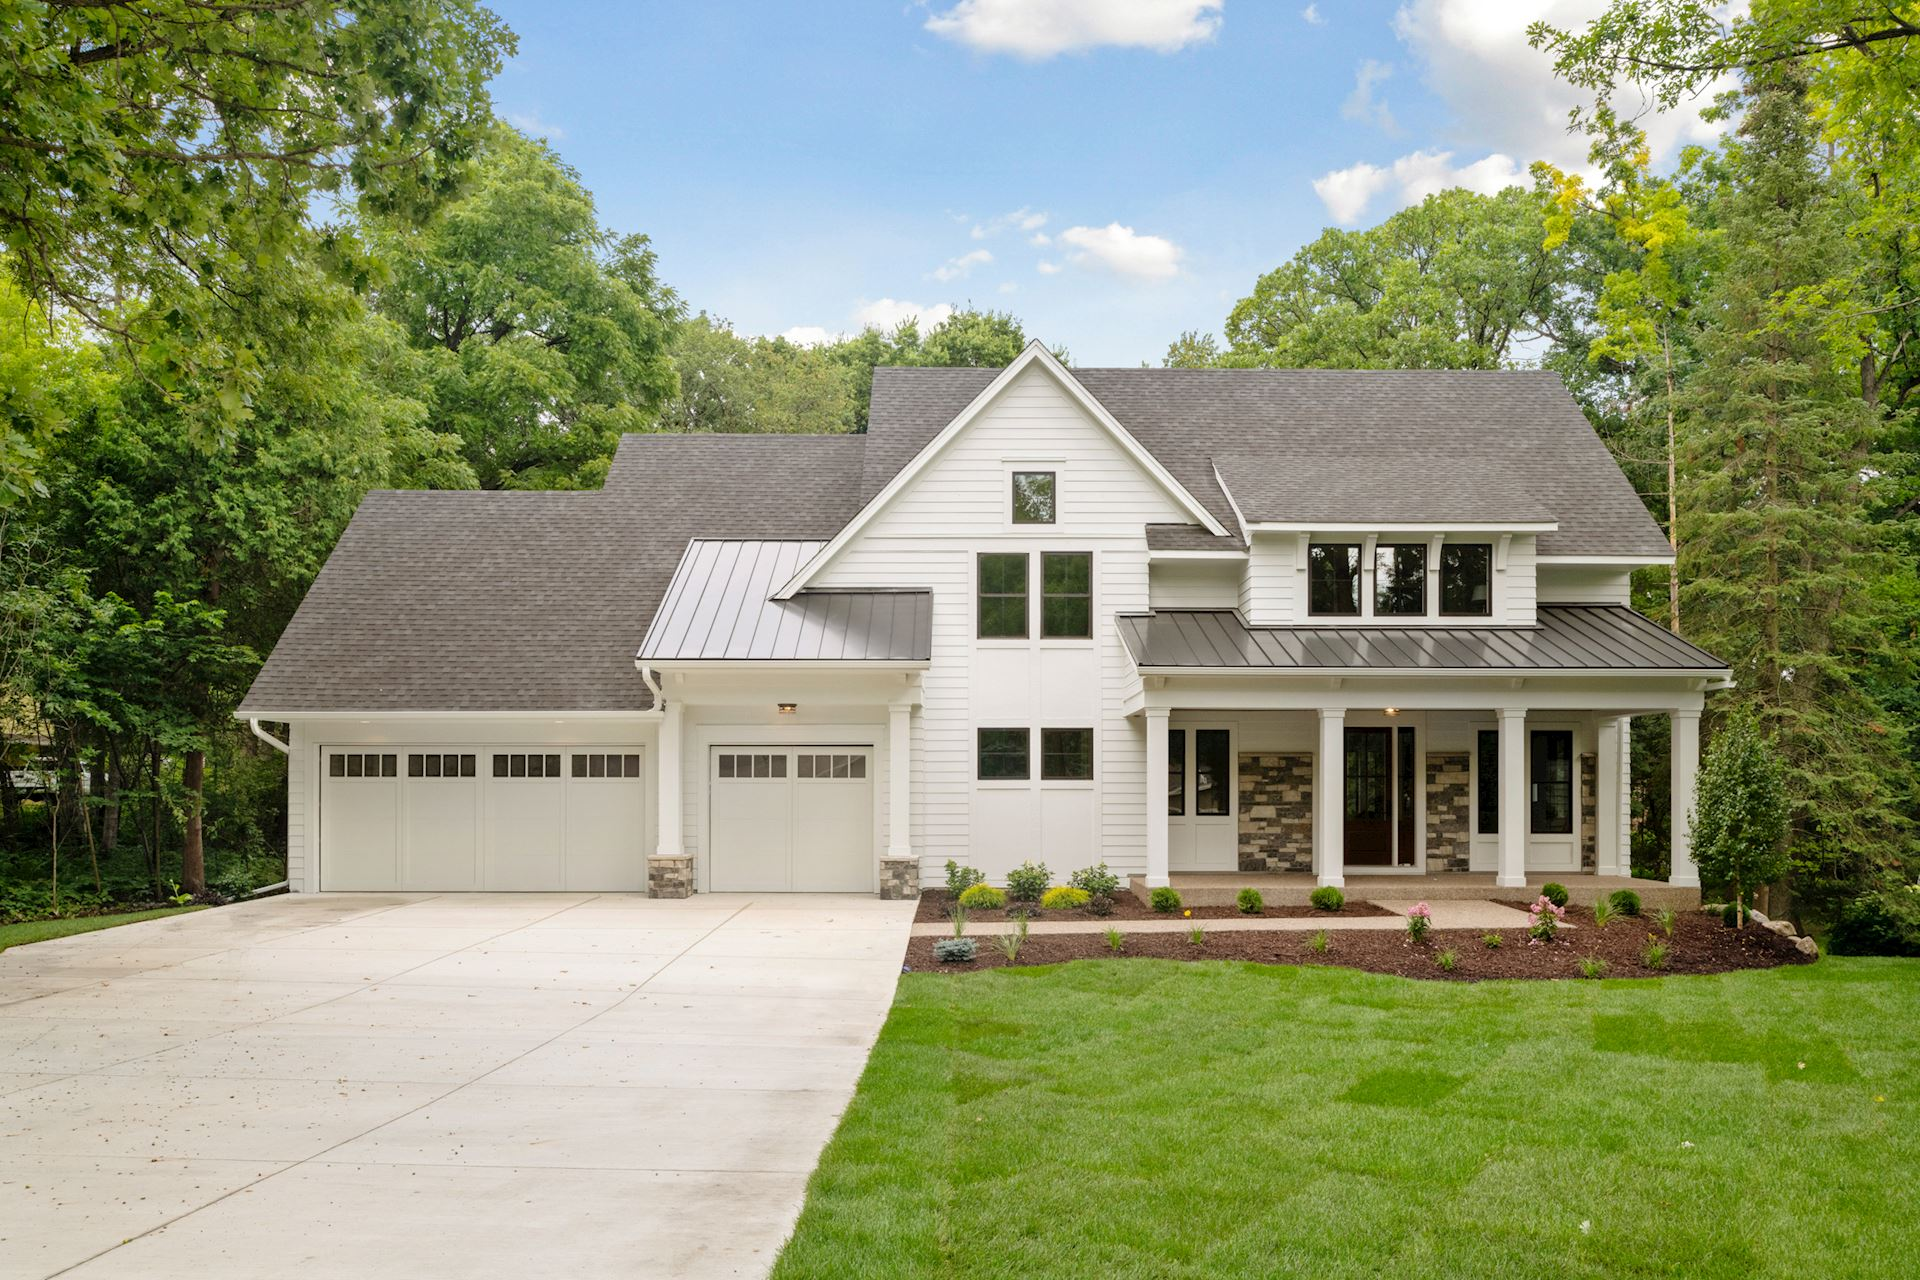 5913 Hansen Road • Edina   Click on image for a complete gallery for this home.